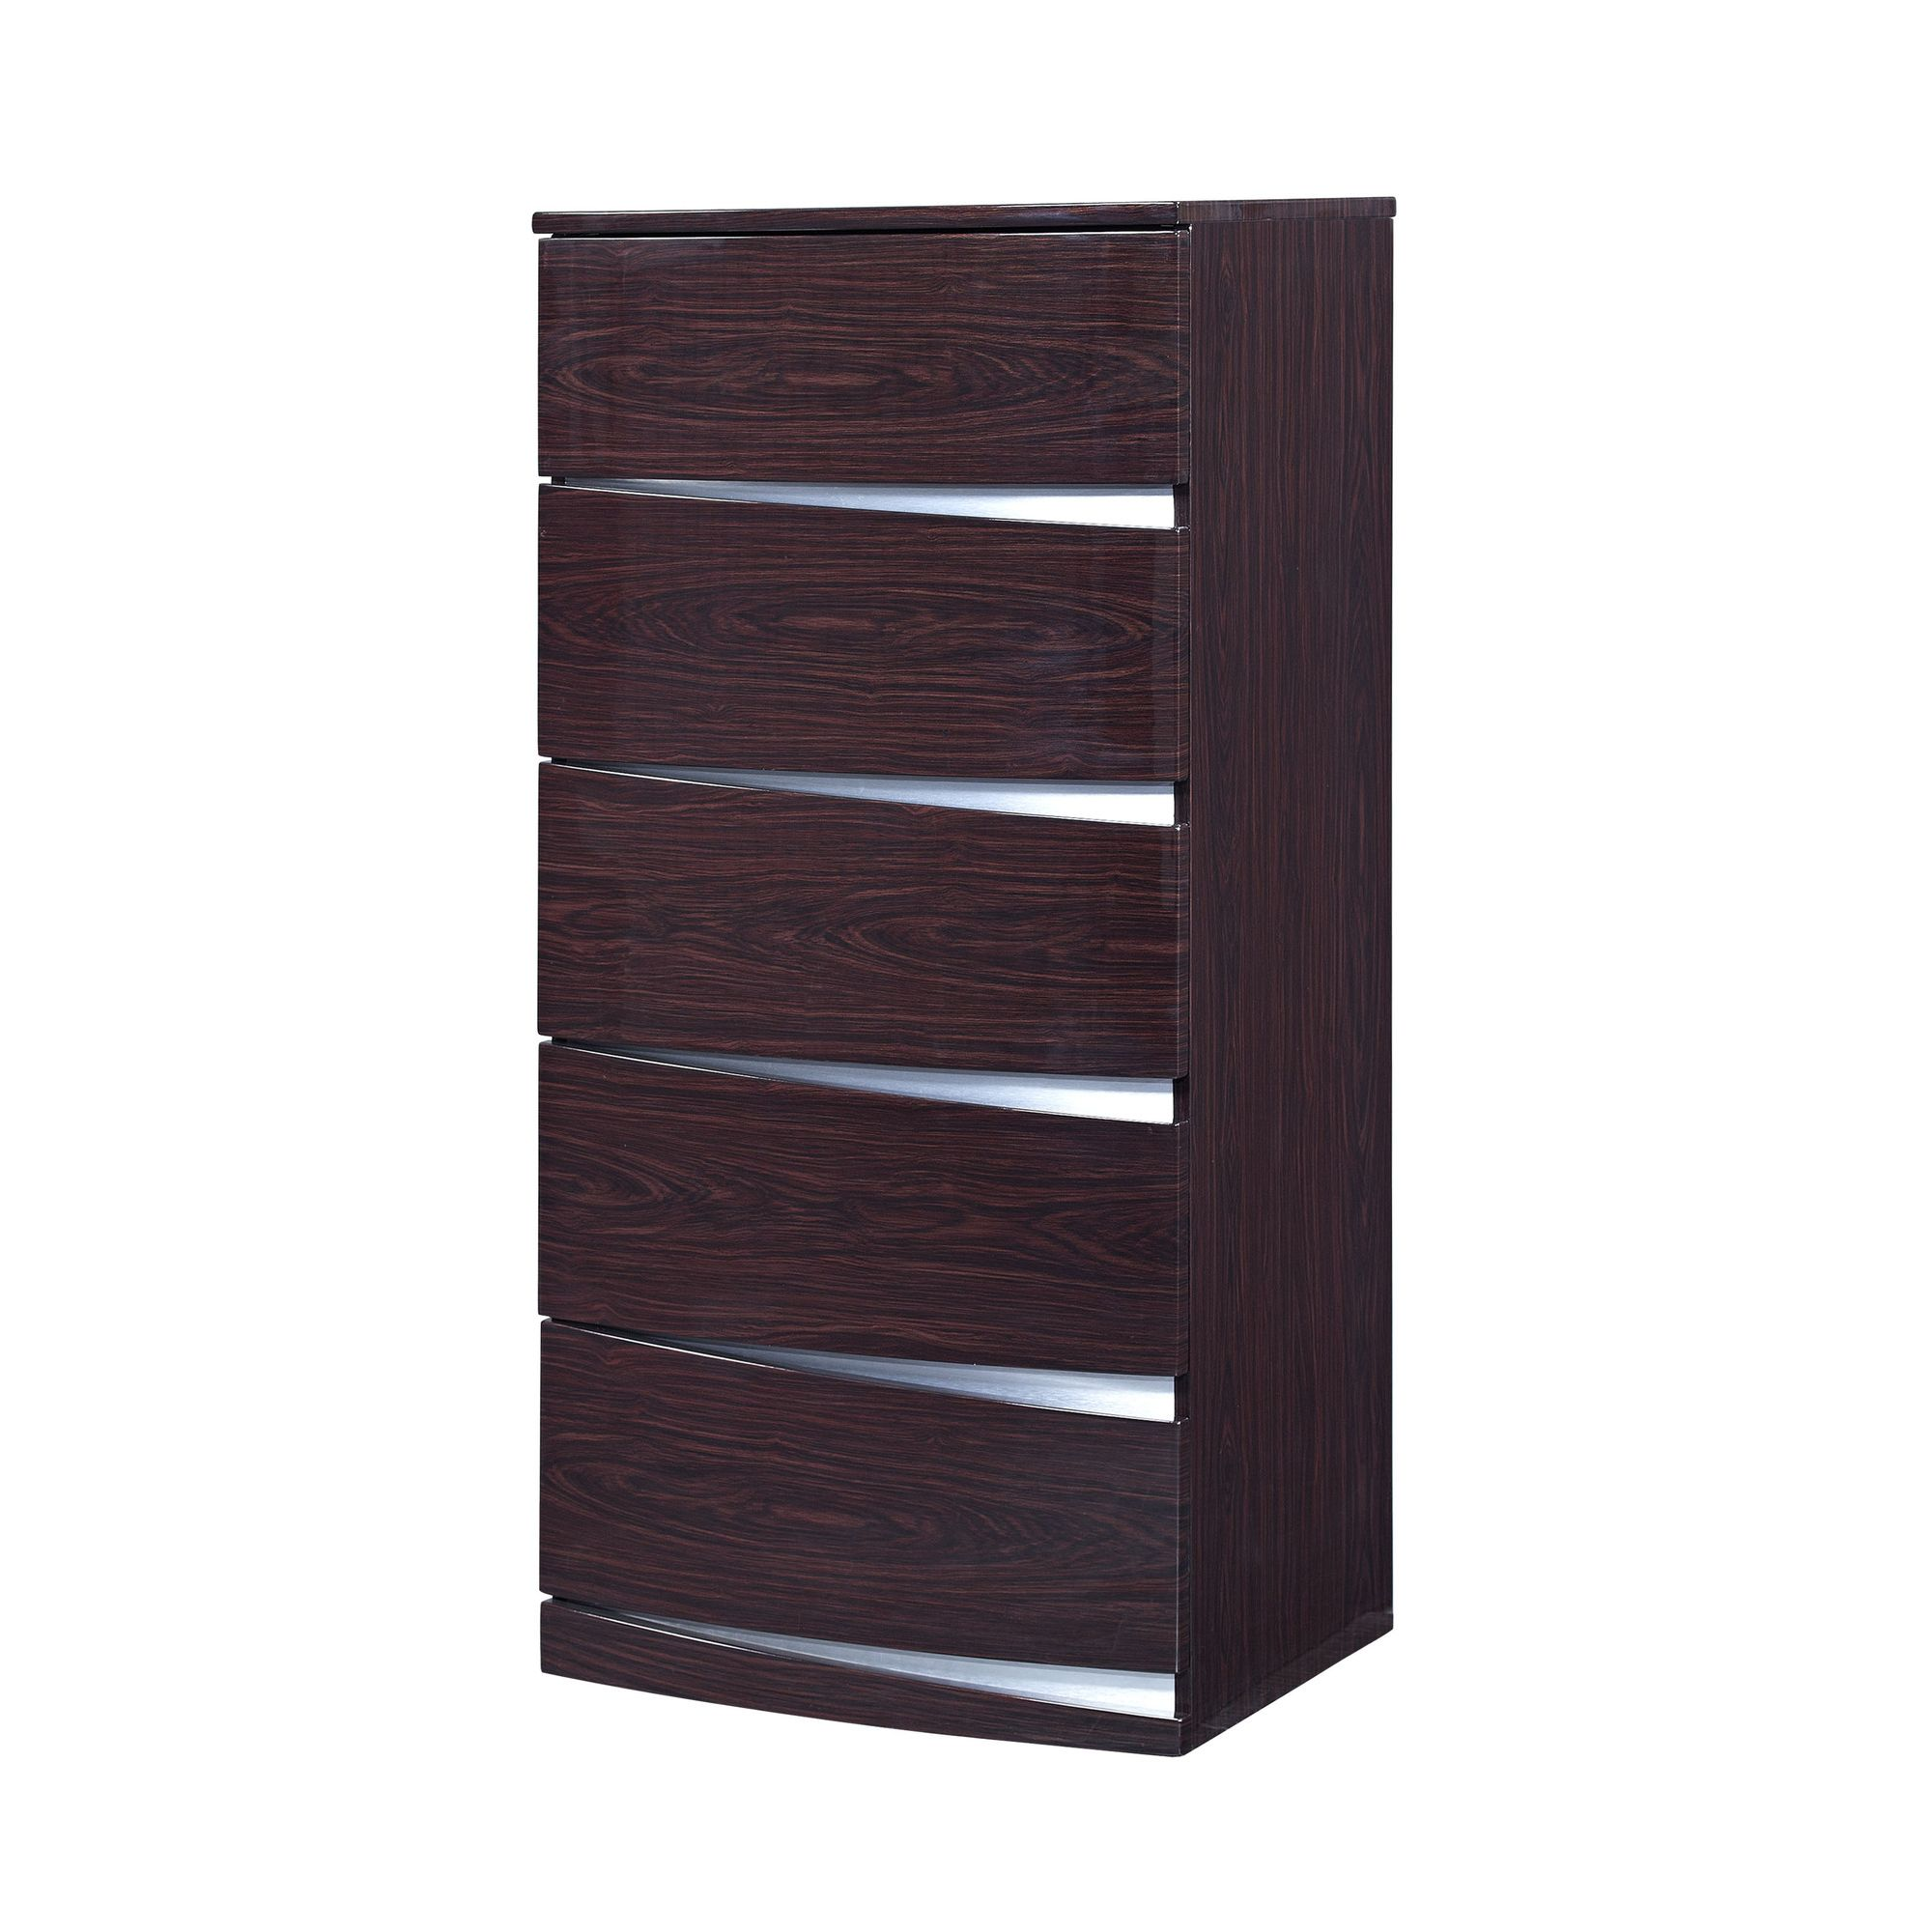 Furniture Link Plaza 5 Drawer Chest - Walnut at Tesco Direct